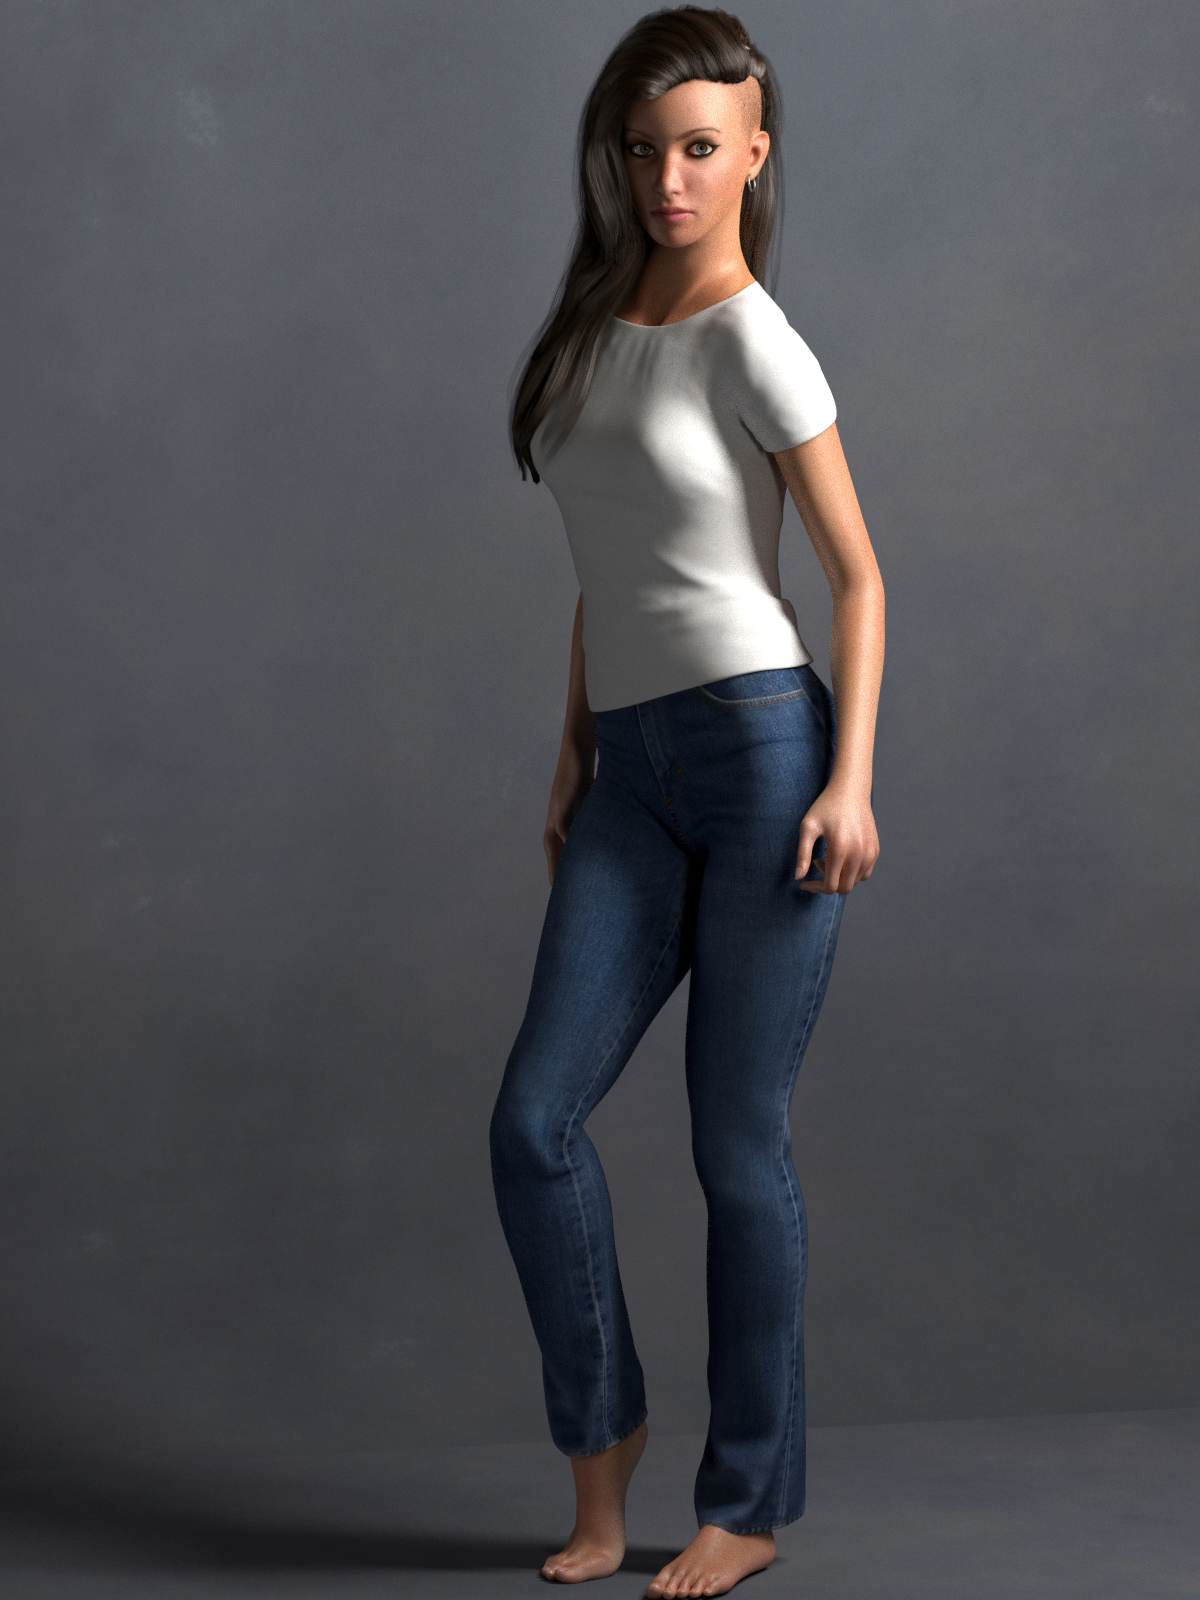 La Femme TShirt and Jeans